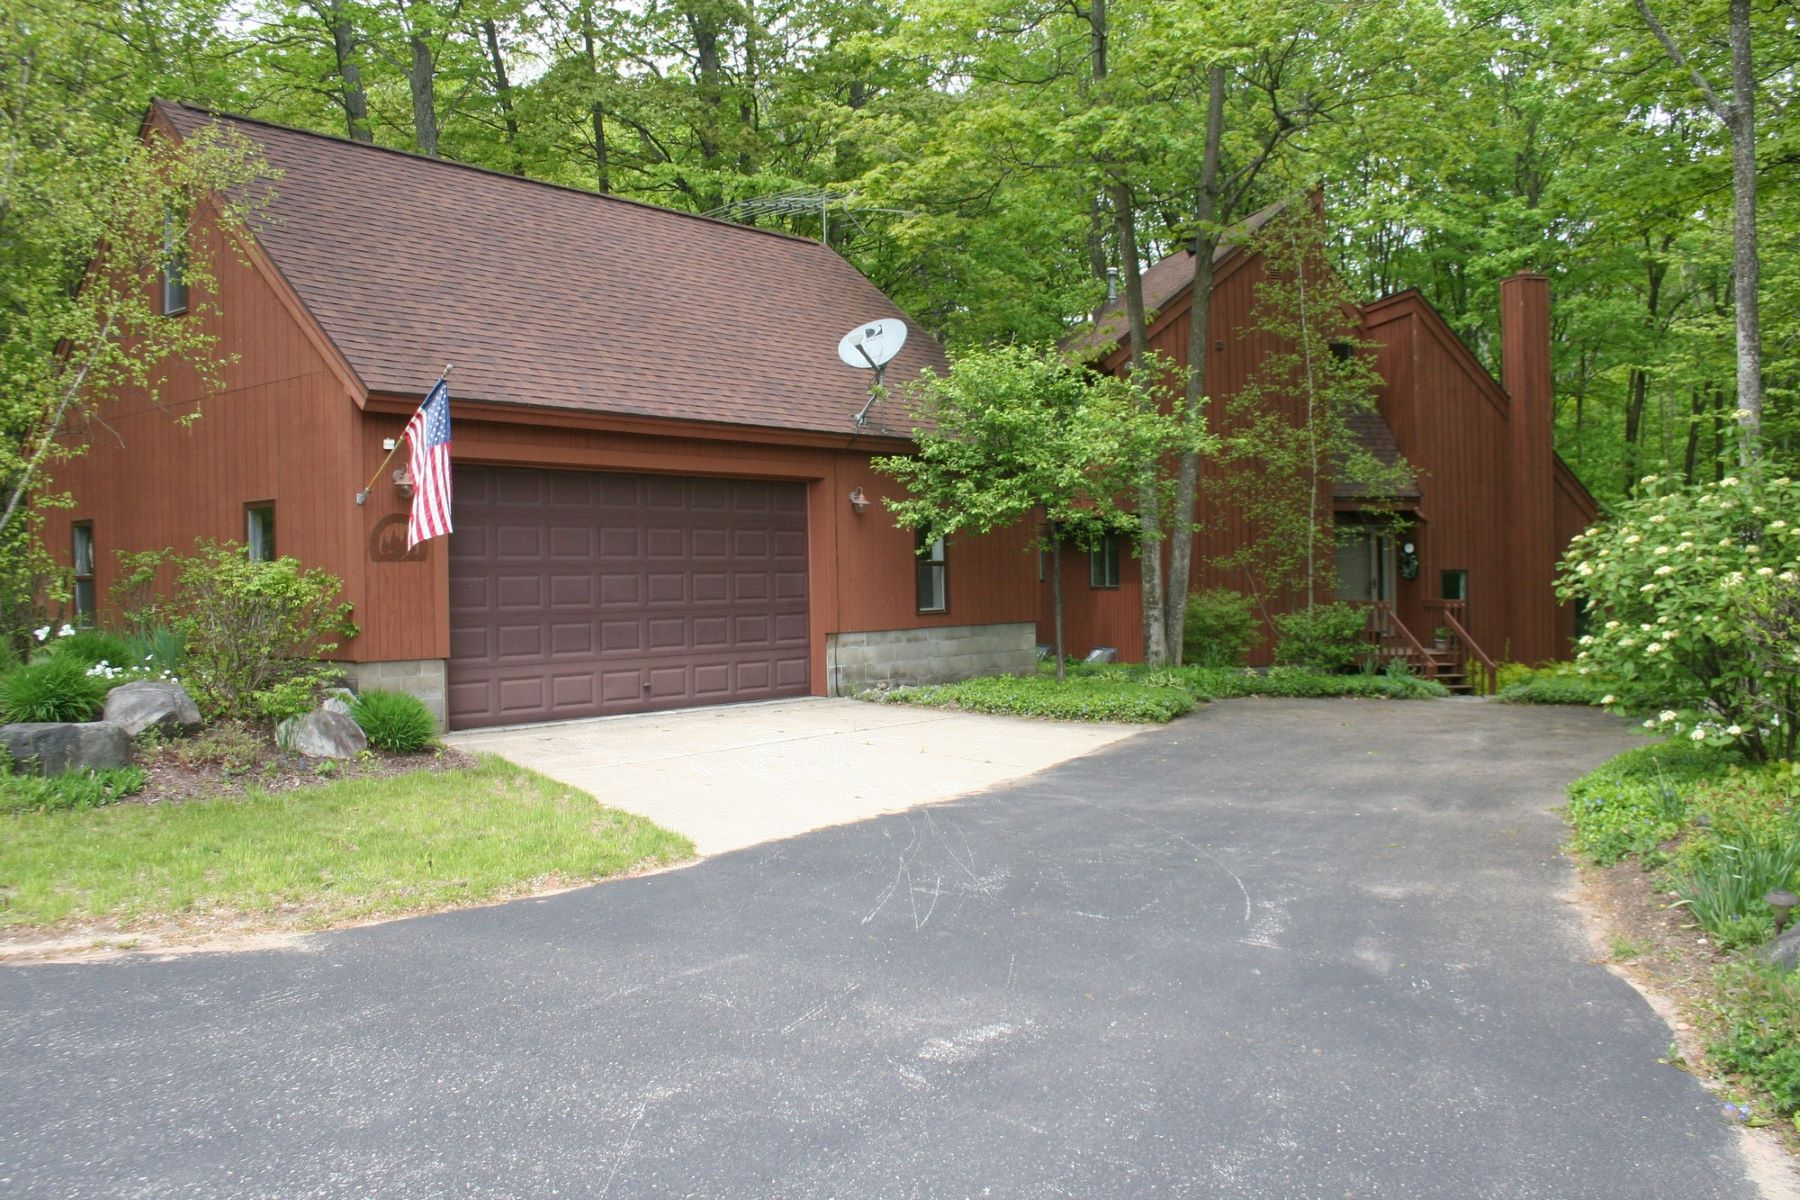 Single Family Home for Sale at 6173 Forest Ridge Lane Harbor Springs, Michigan, 49740 United States